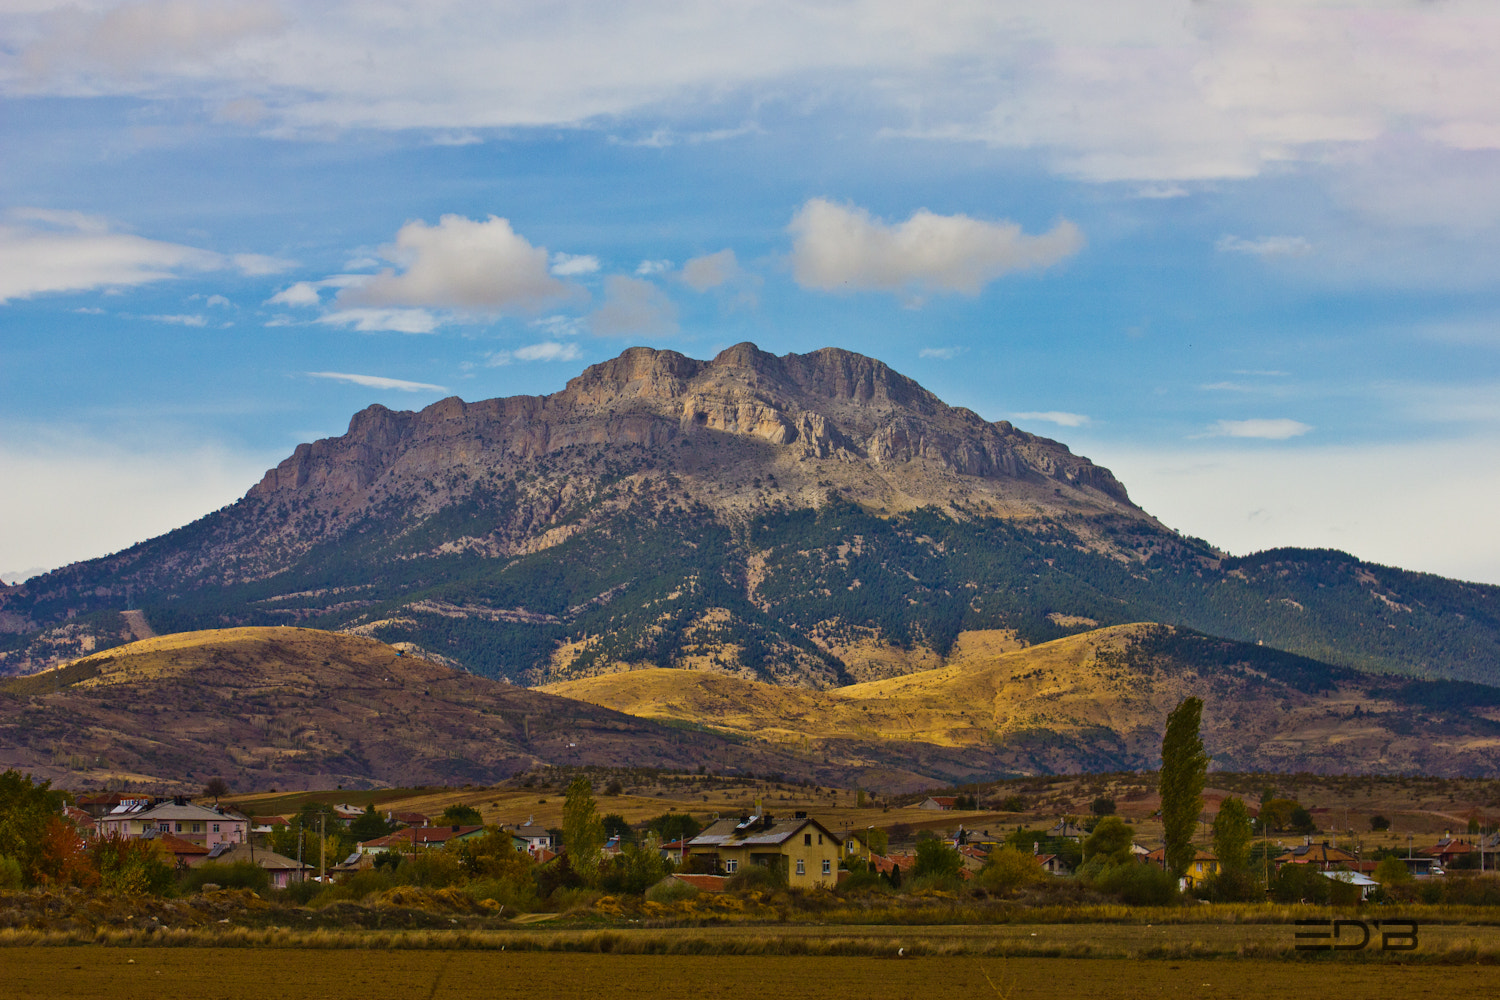 Photograph a town in the valley by Edib Unal on 500px